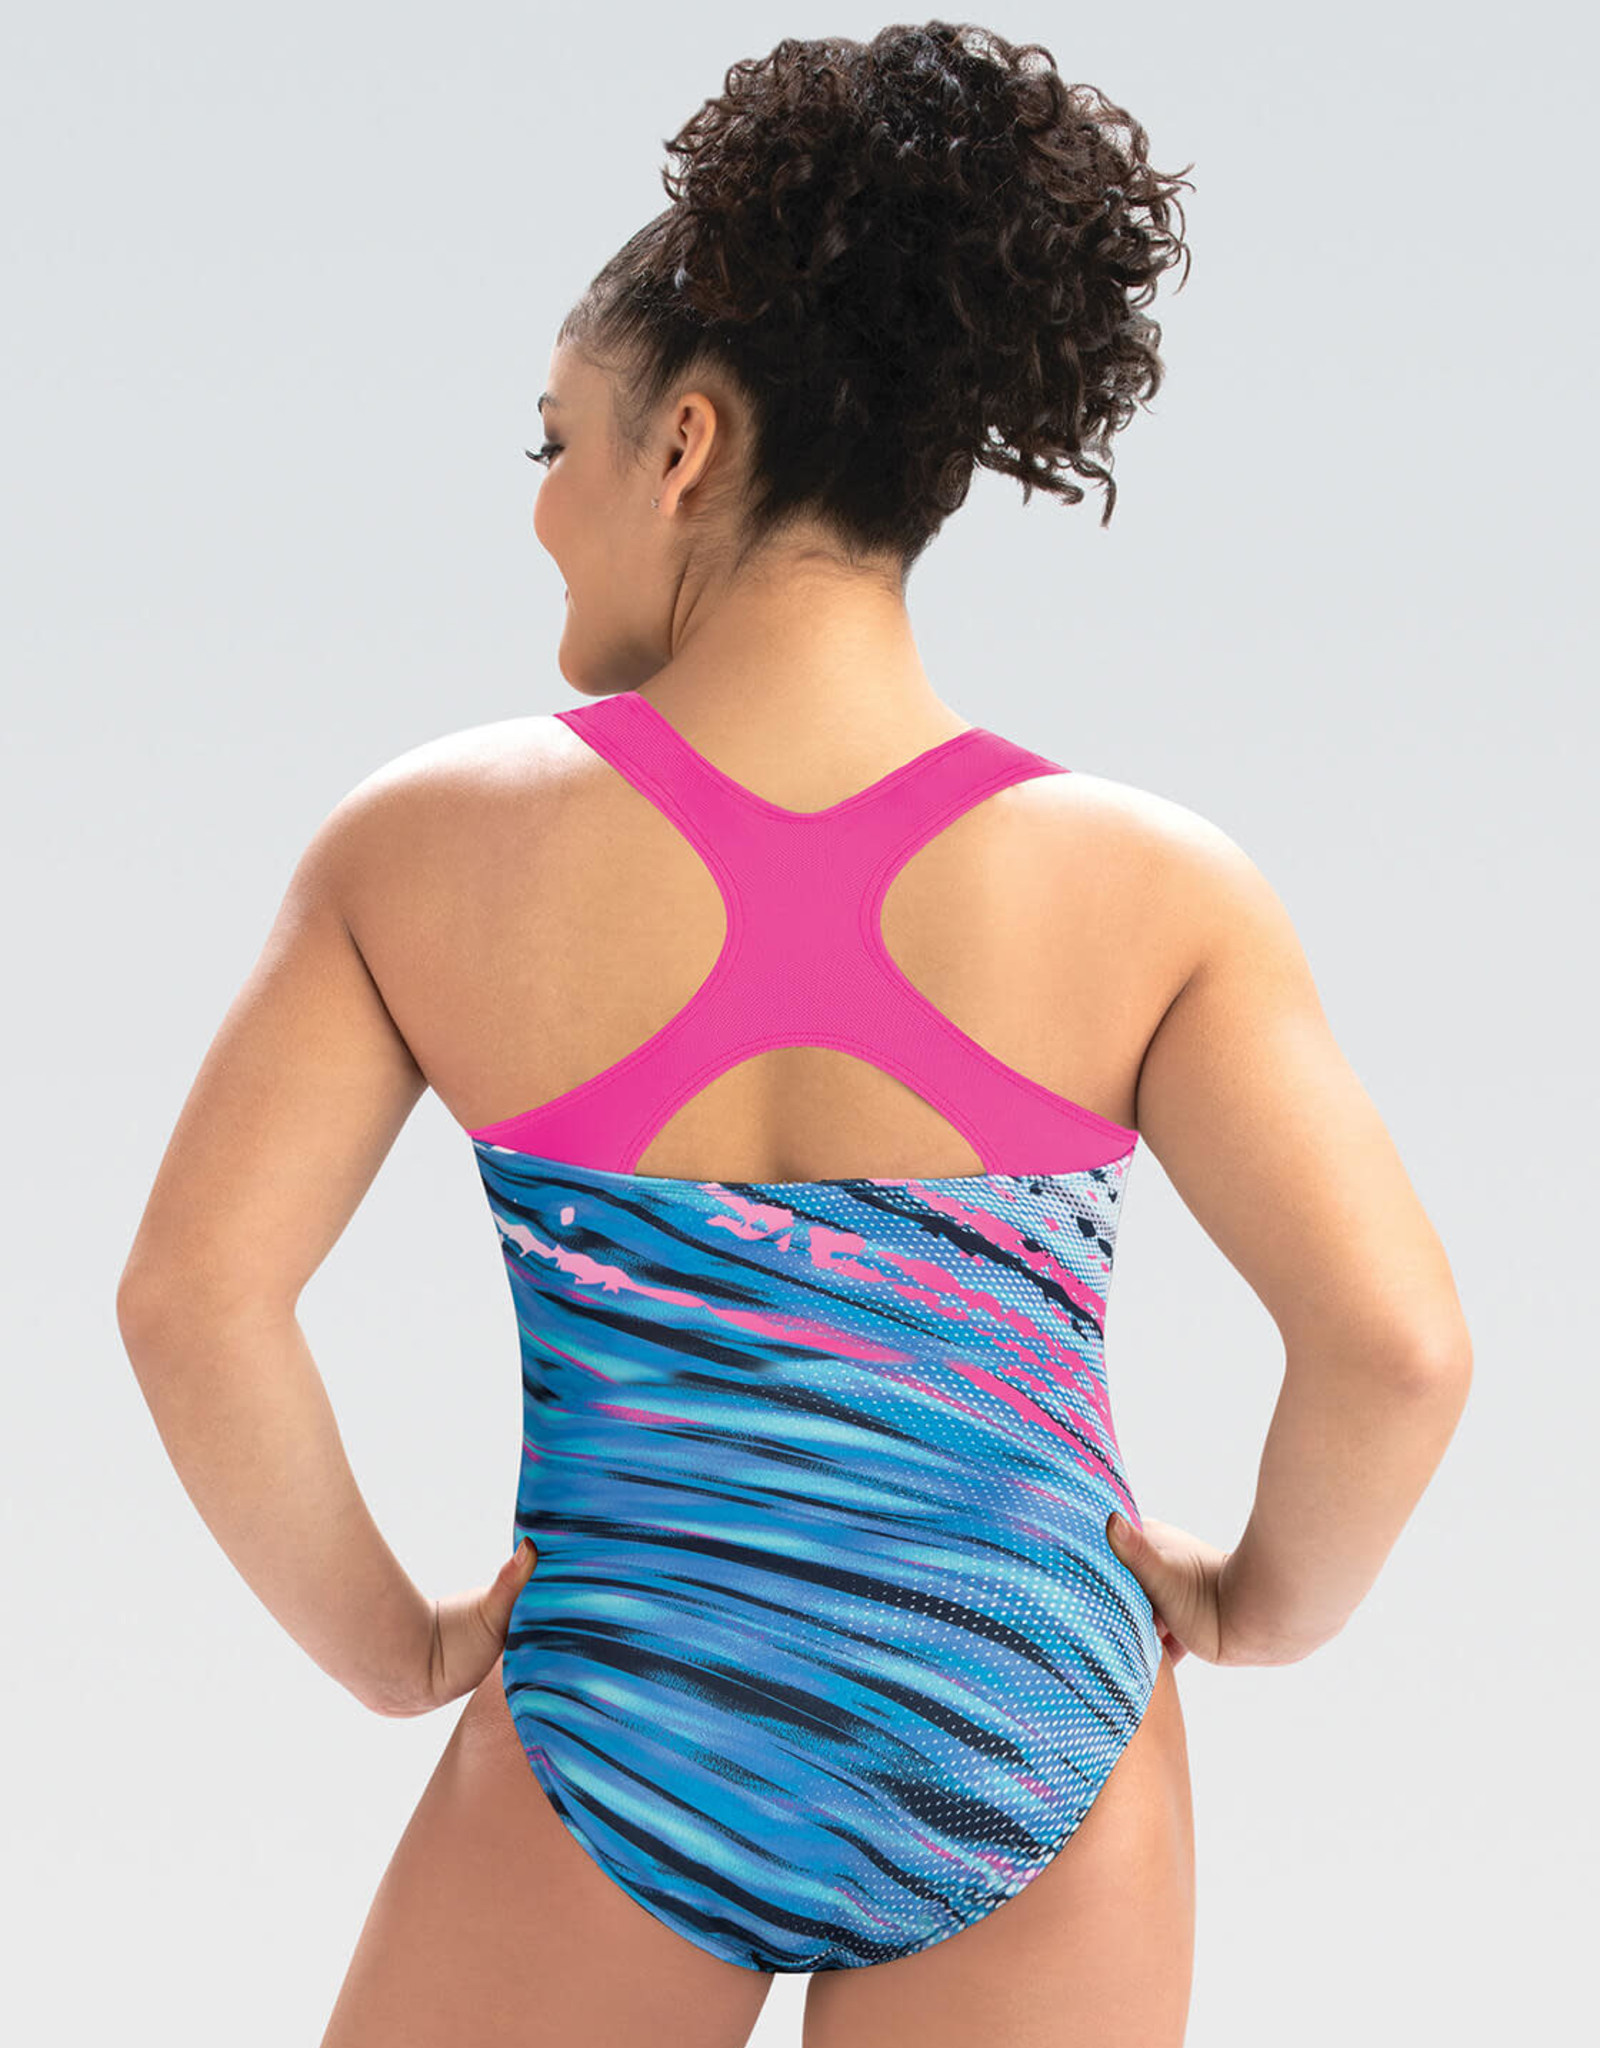 GK Elite E4105 -Collection Laurie Hernandez sublimé